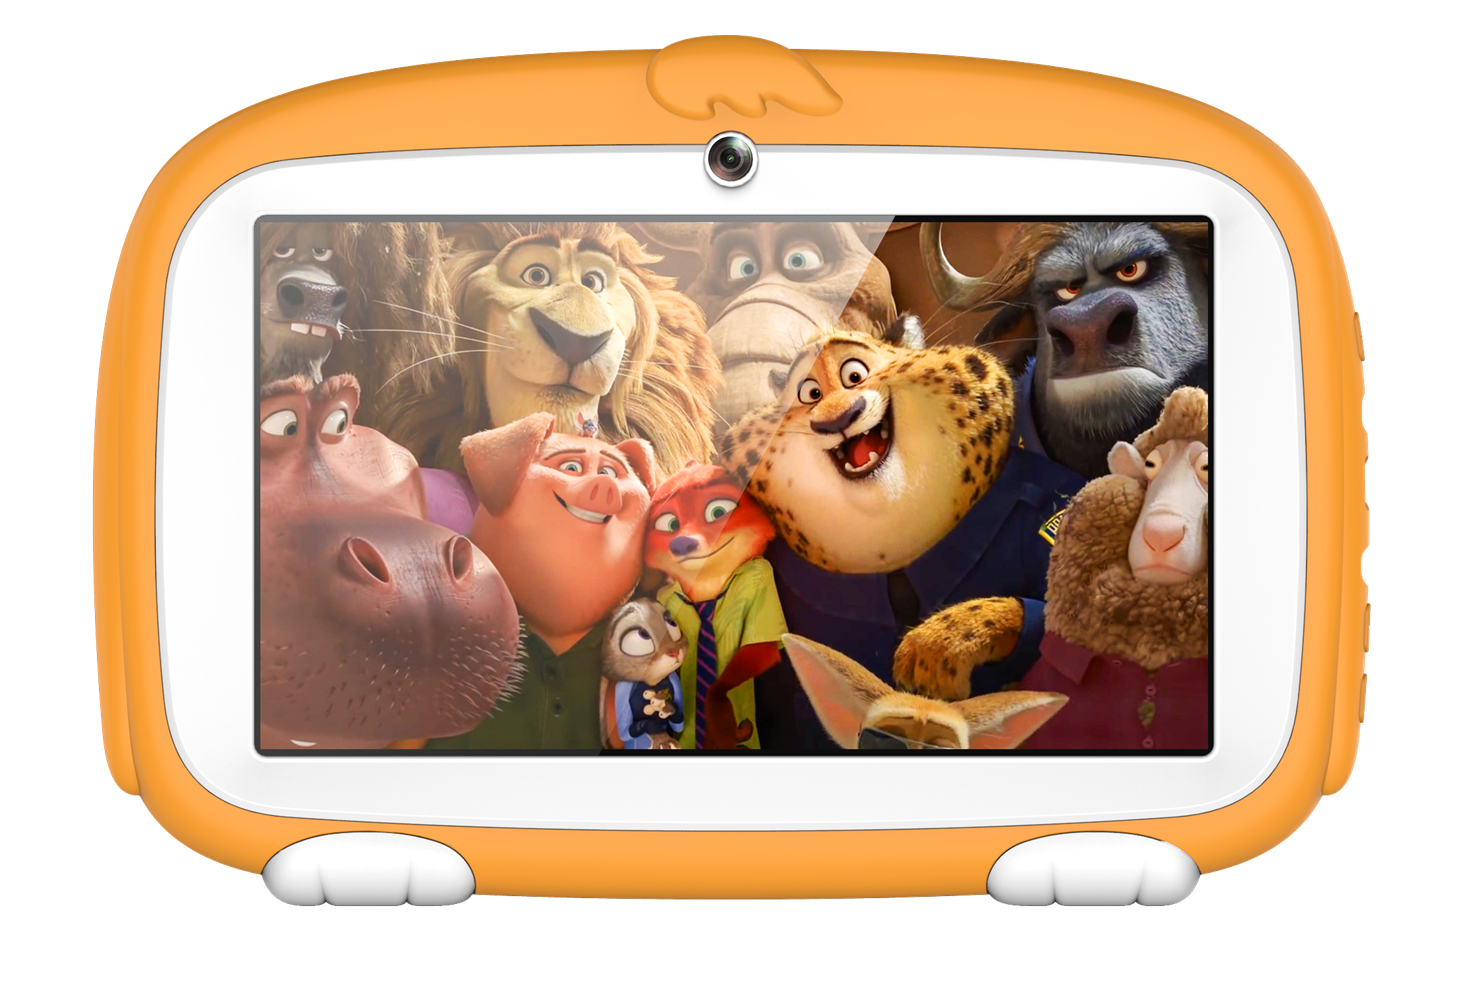 Wholesale Android Tablet PC - For Kids, Sophisticated Hardware, WiFi, 7 In